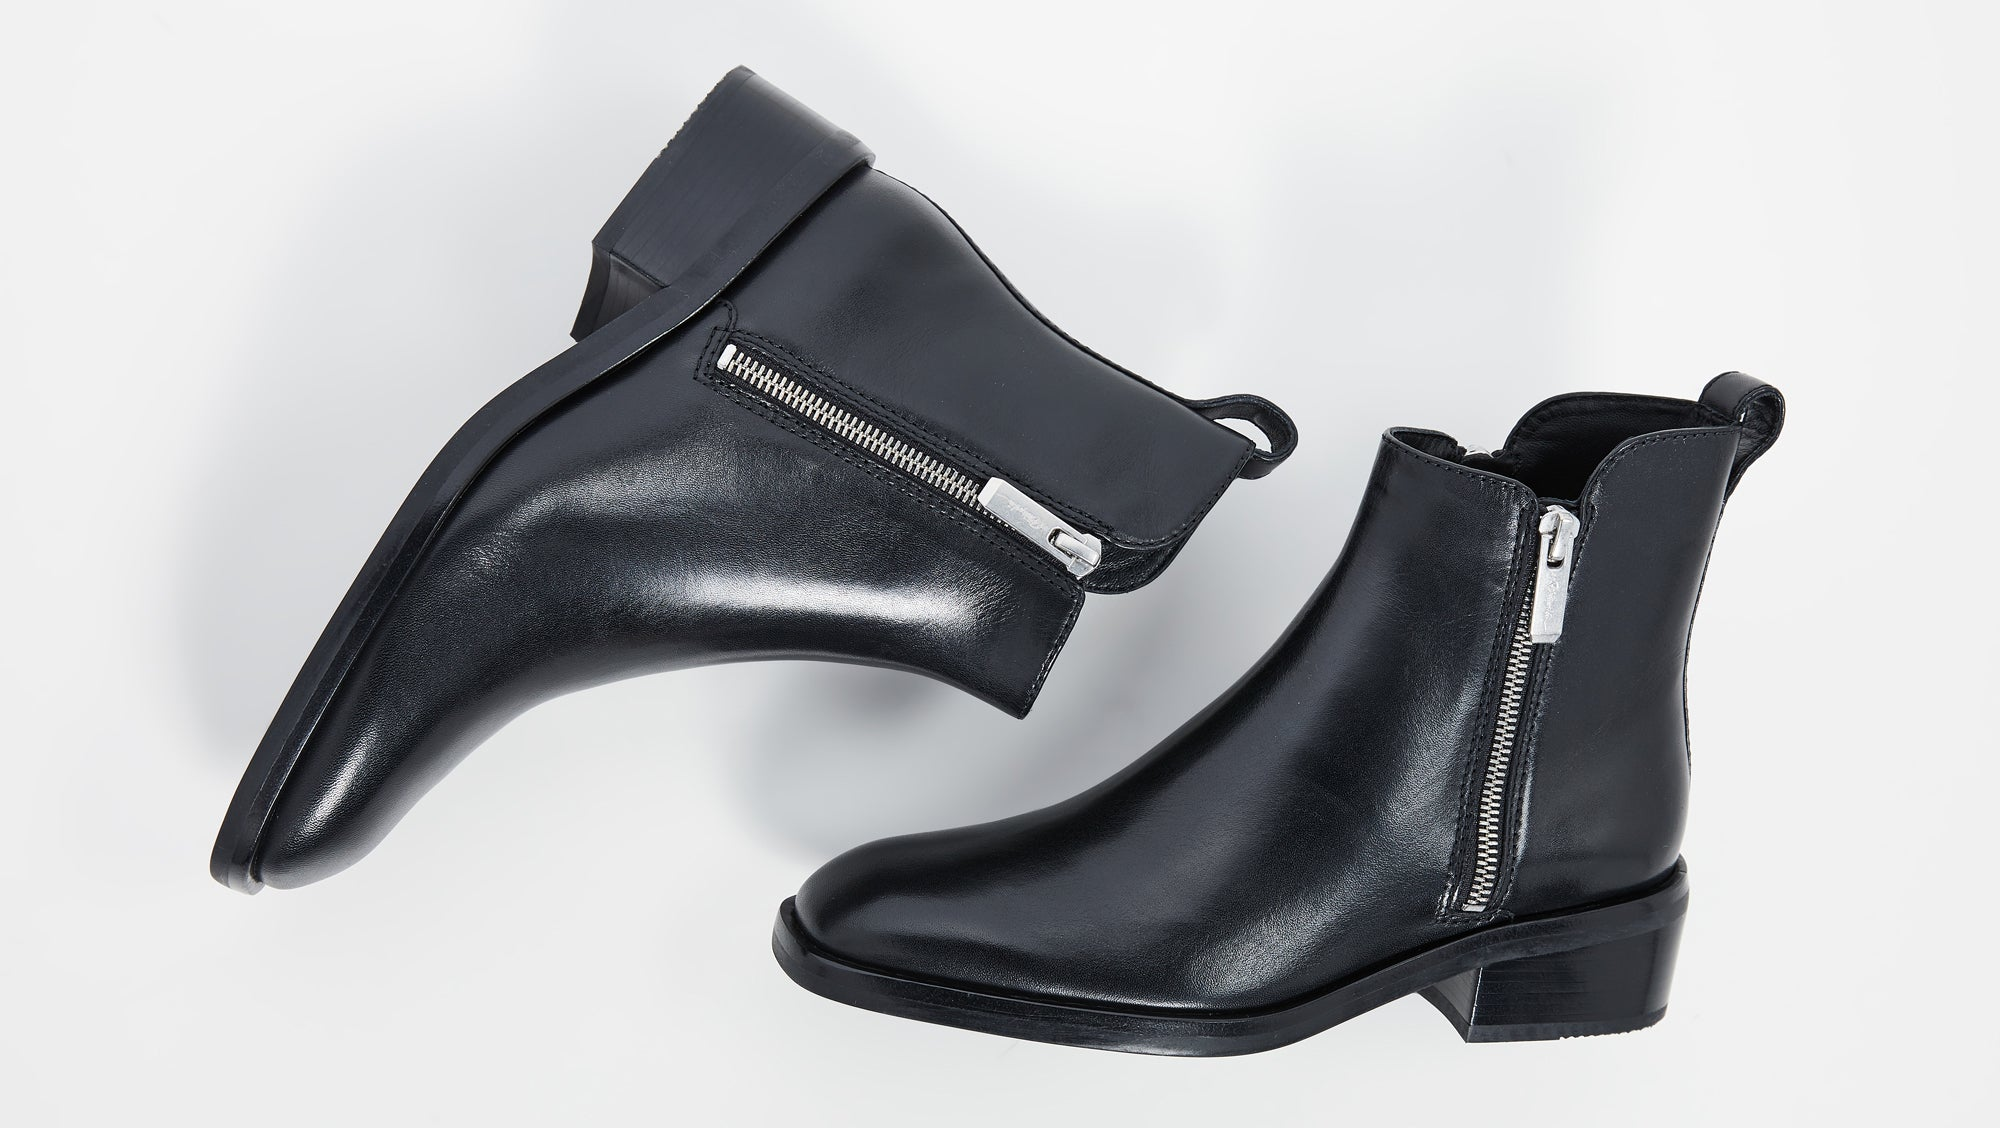 Ankle Boots - Capsule Wardrobe Collection - Quality Craftsmanship and Timeless Style